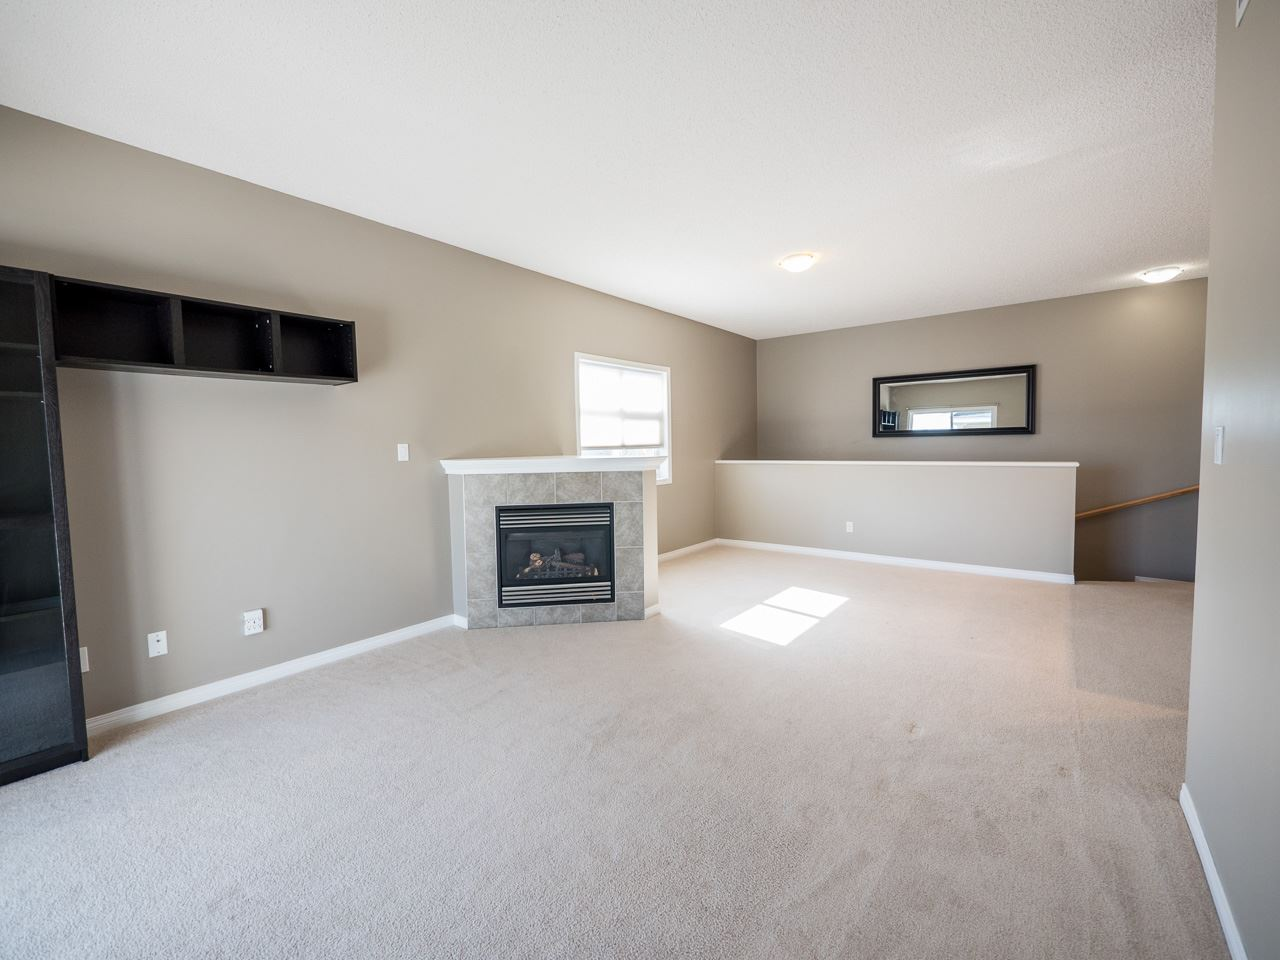 Photo 10: 71 3040 SPENCE Way in Edmonton: Zone 53 Townhouse for sale : MLS(r) # E4063695